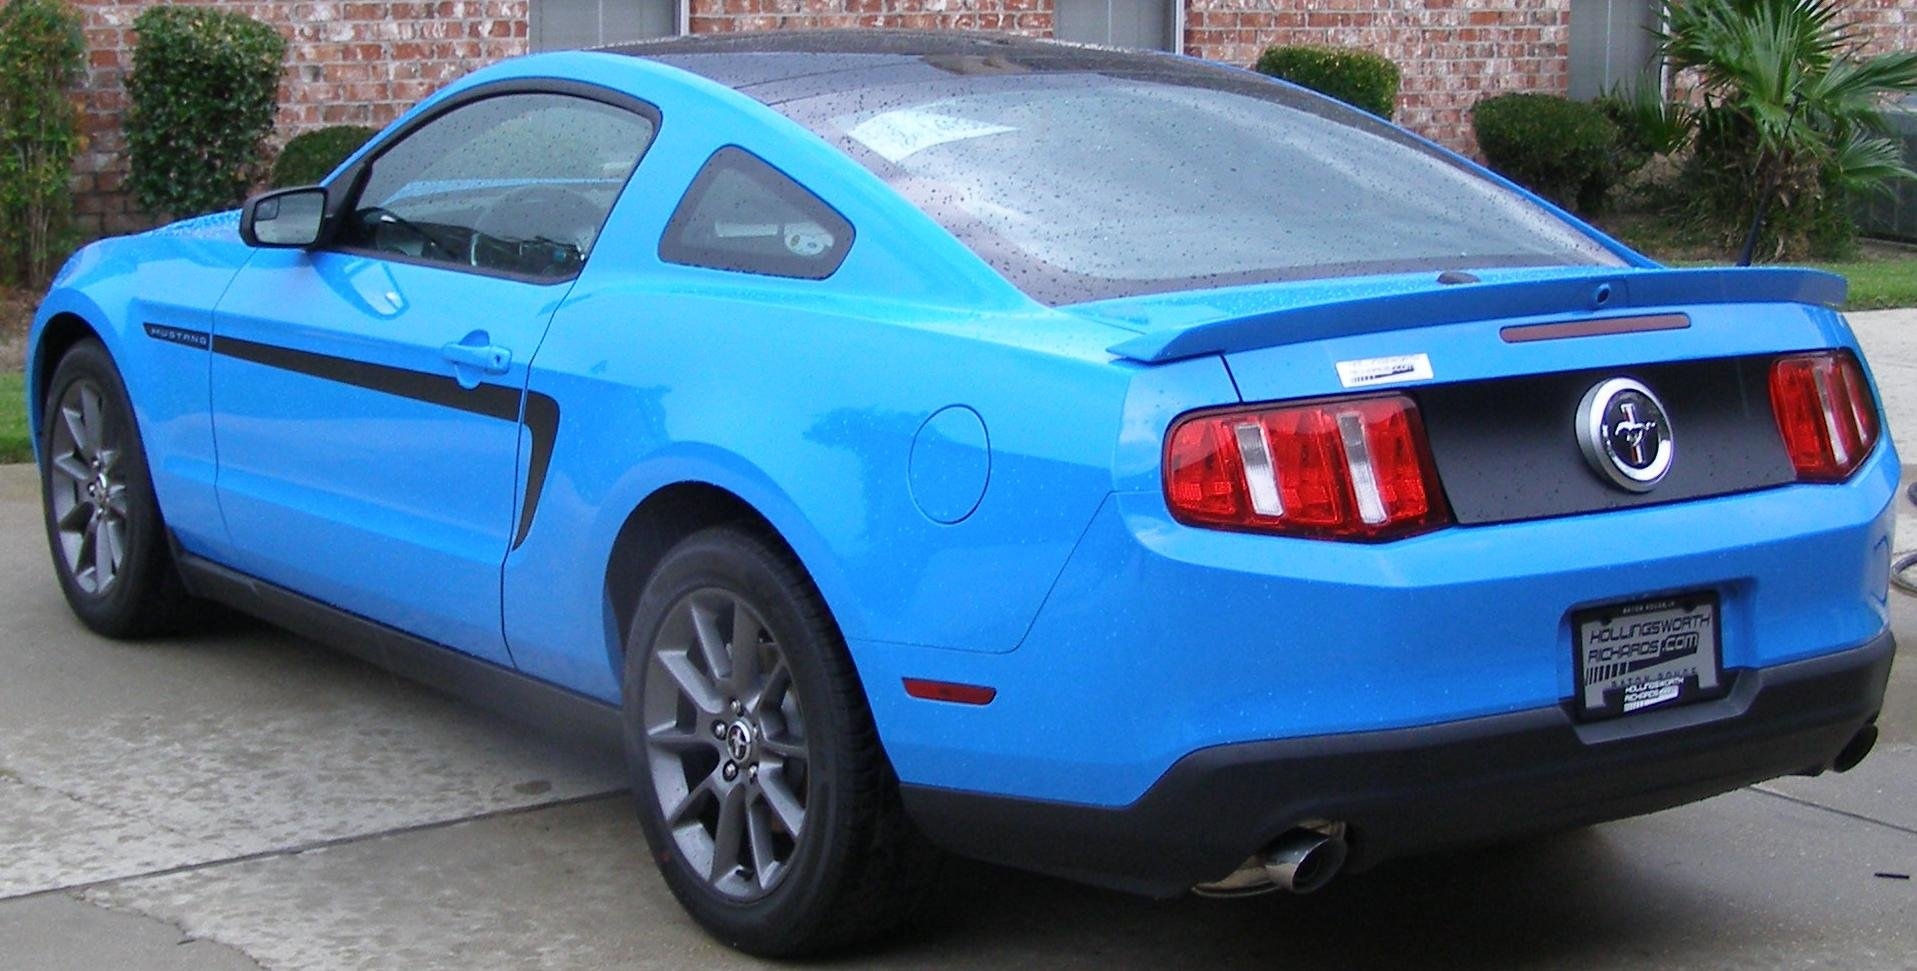 Kona Blue Mustang >> 2011 grabber blue v6 MCA with glass roof - pic - Ford ...